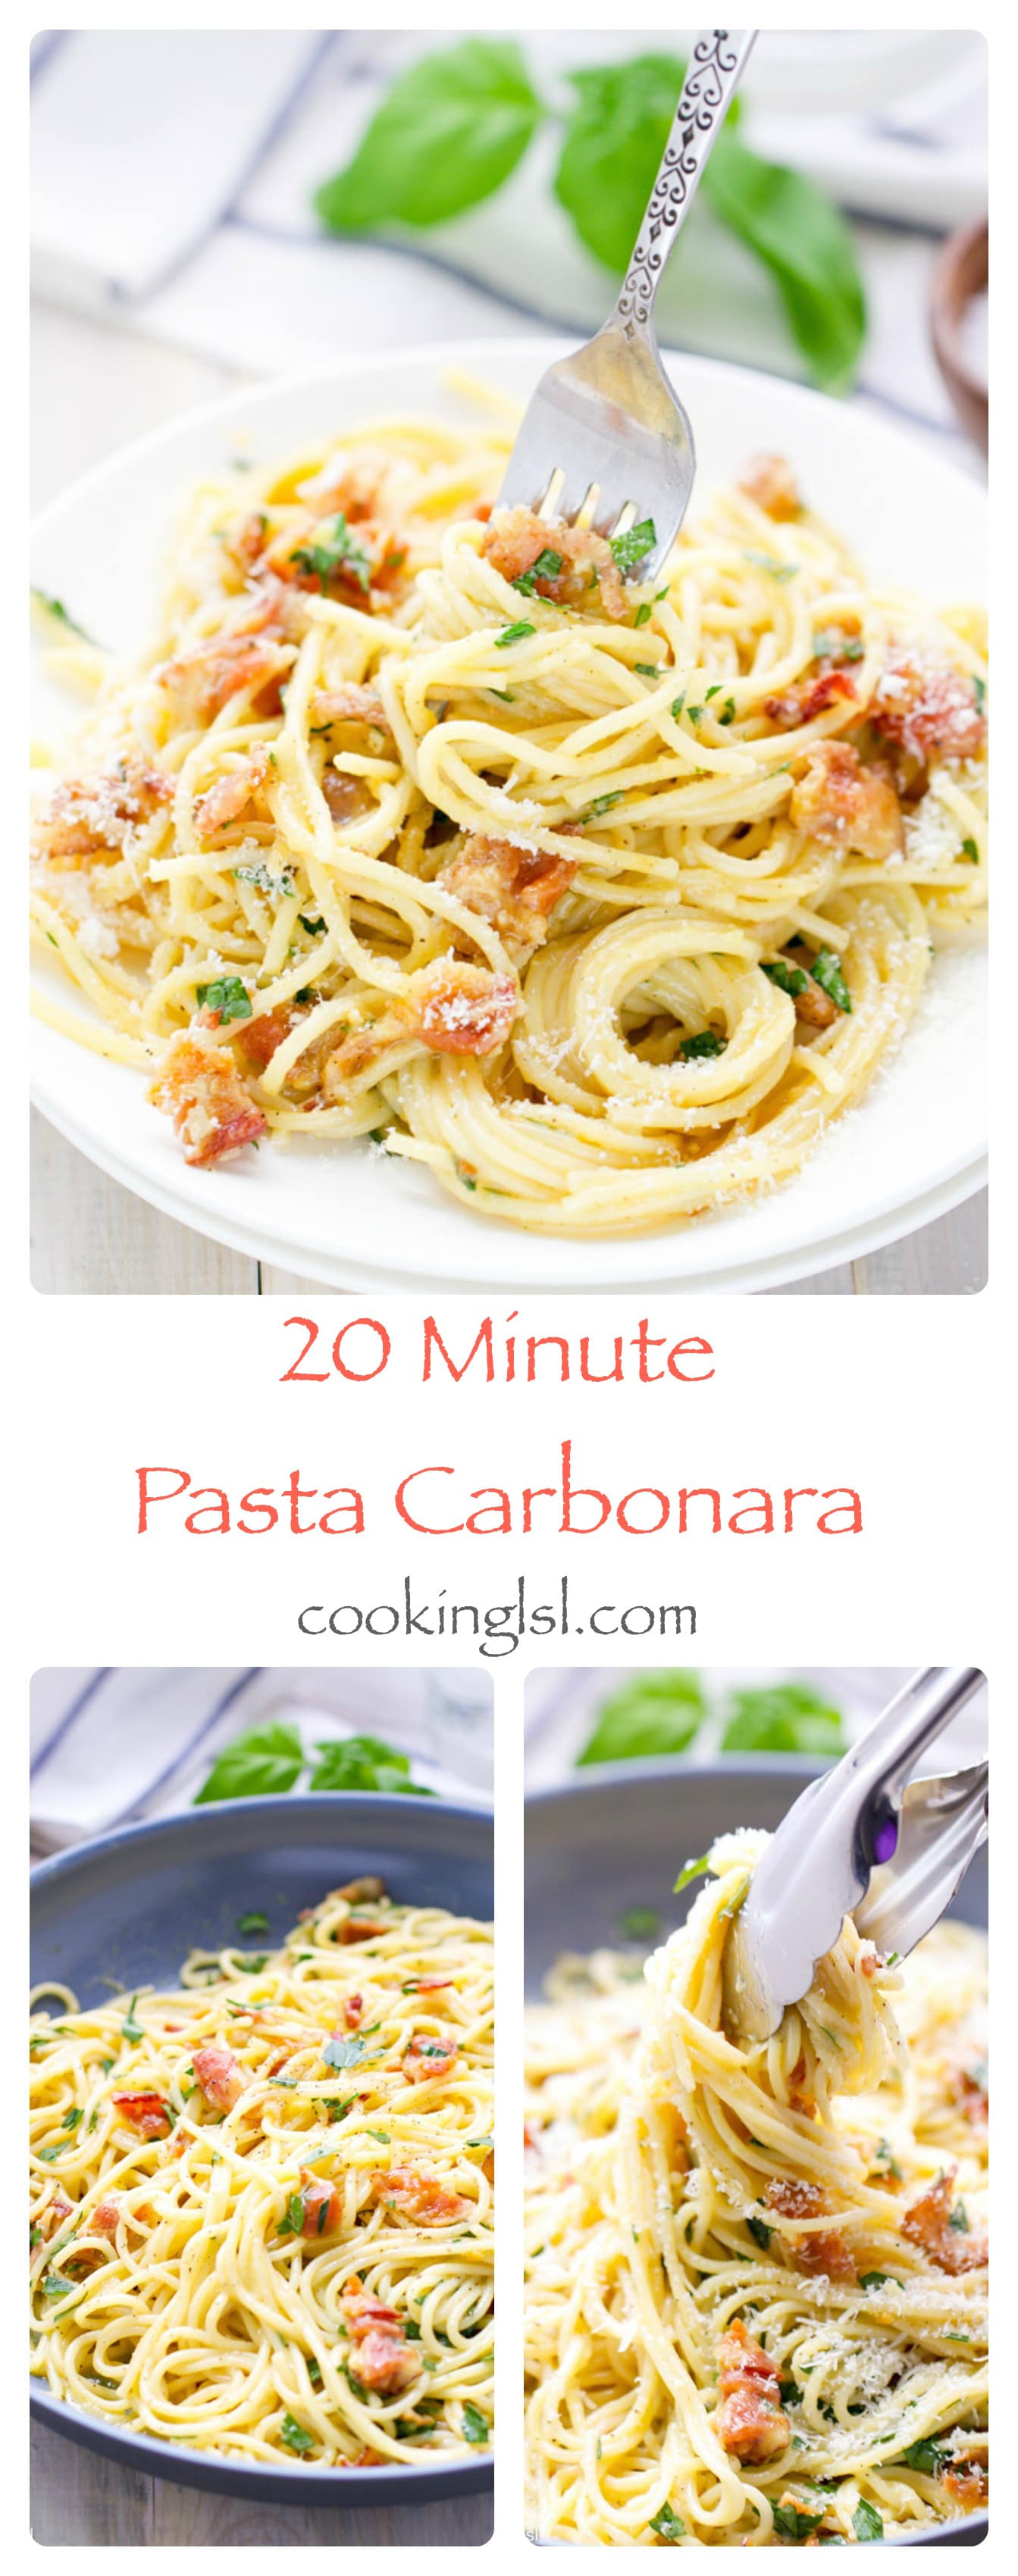 Easy 20 Minute Pasta Carbonara with only 5 main ingredients and it takes 20 minutes to make. Perfect for a quick weeknight dinner.